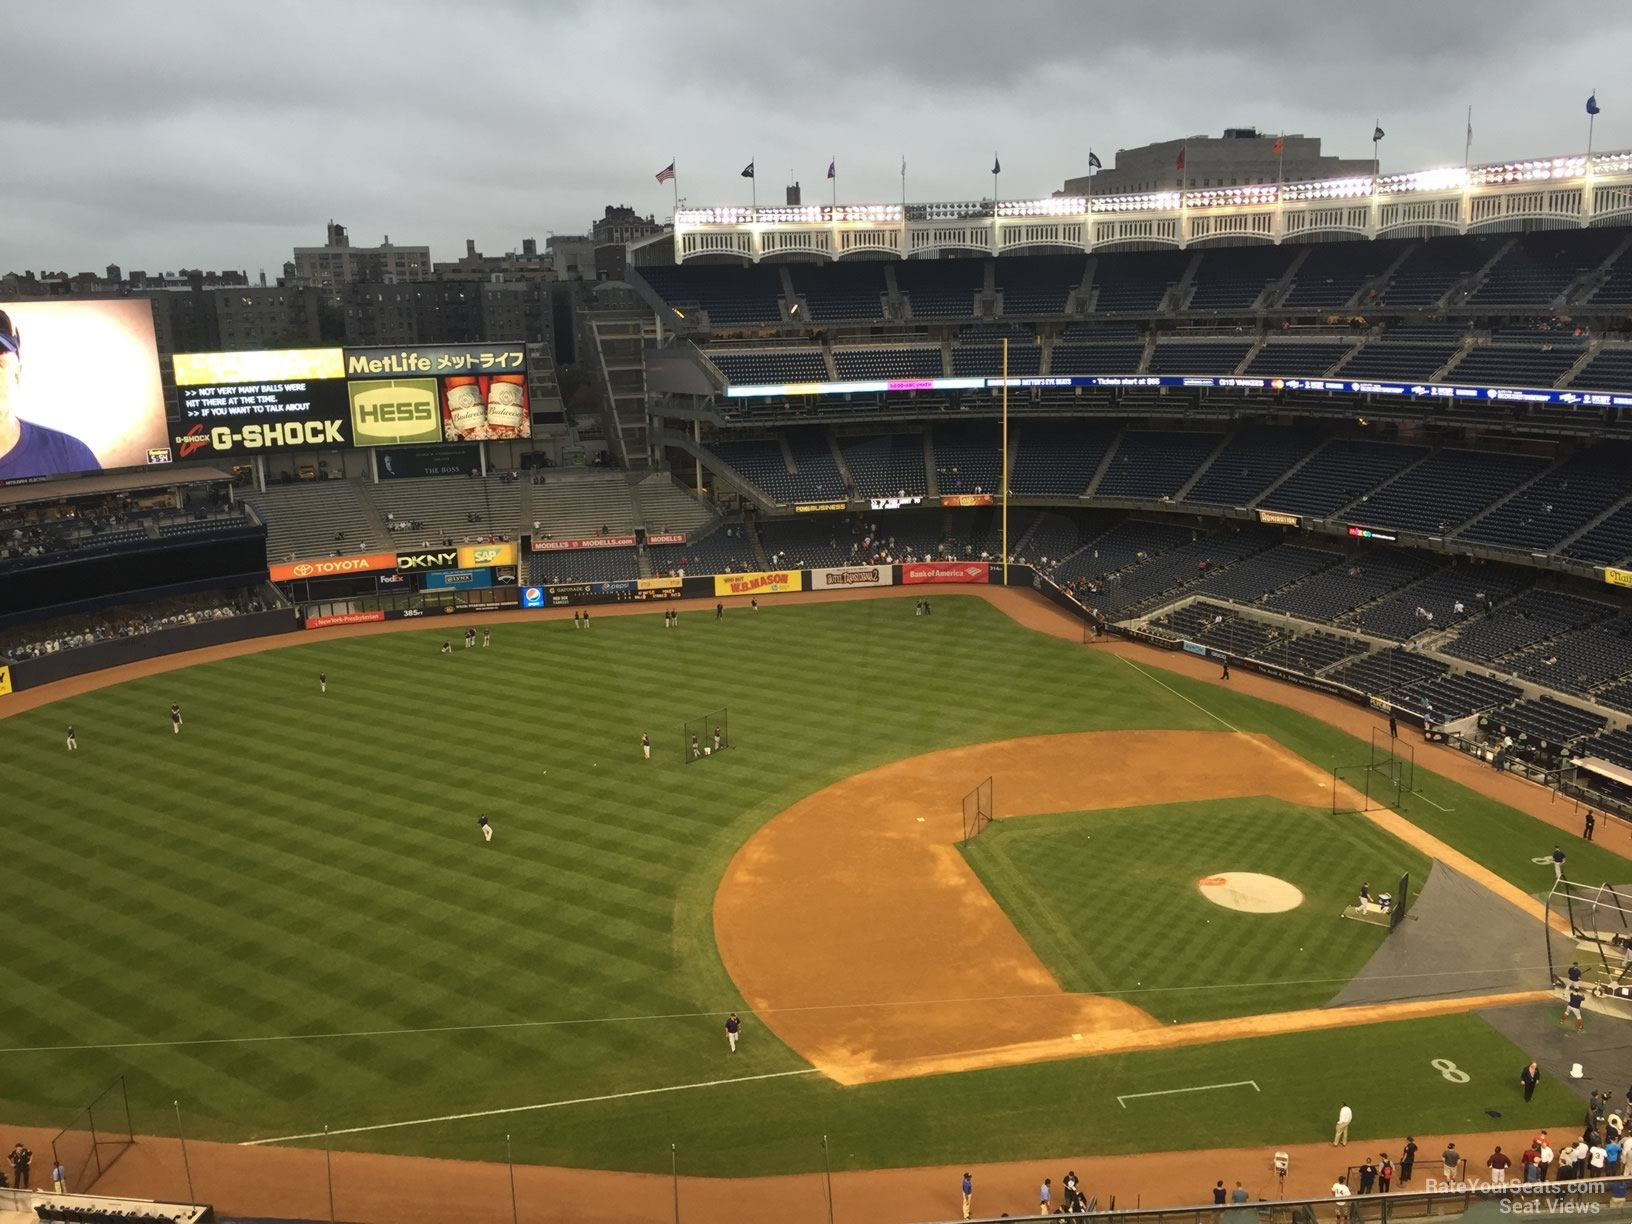 New York Yankees Seat View for Yankee Stadium Section 425, Row 6